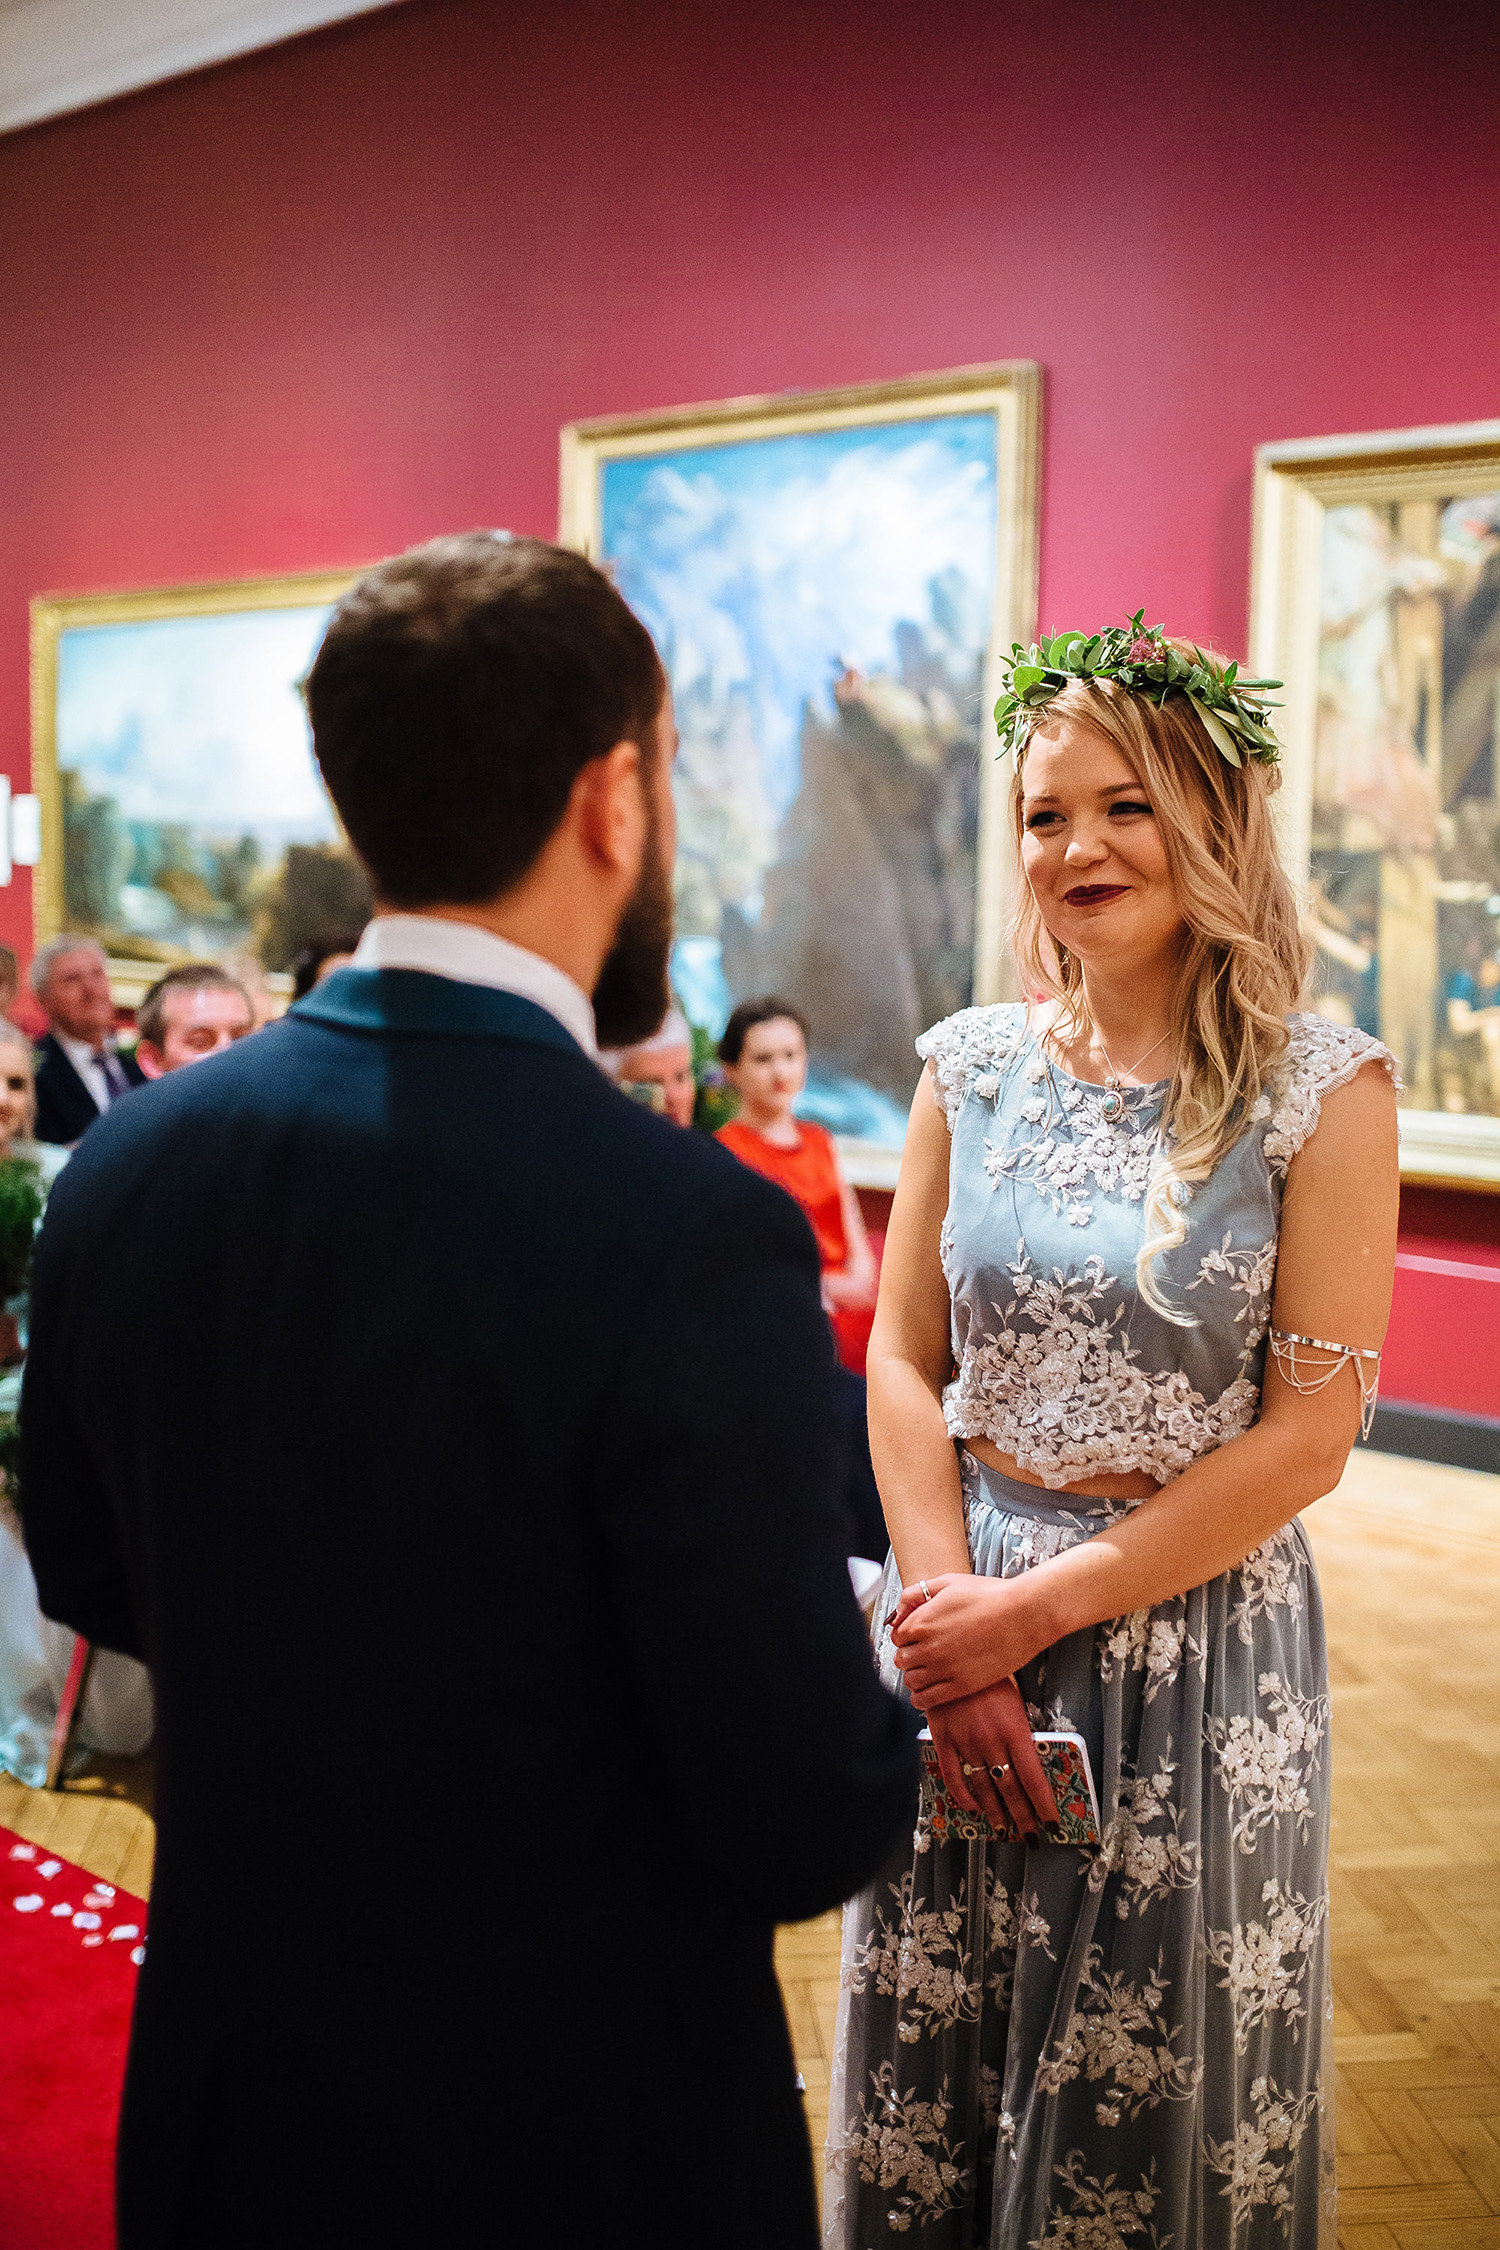 LAING ART GALLERY NEWCASTLE WEDDING PHOTOGRAPHY 70.JPG